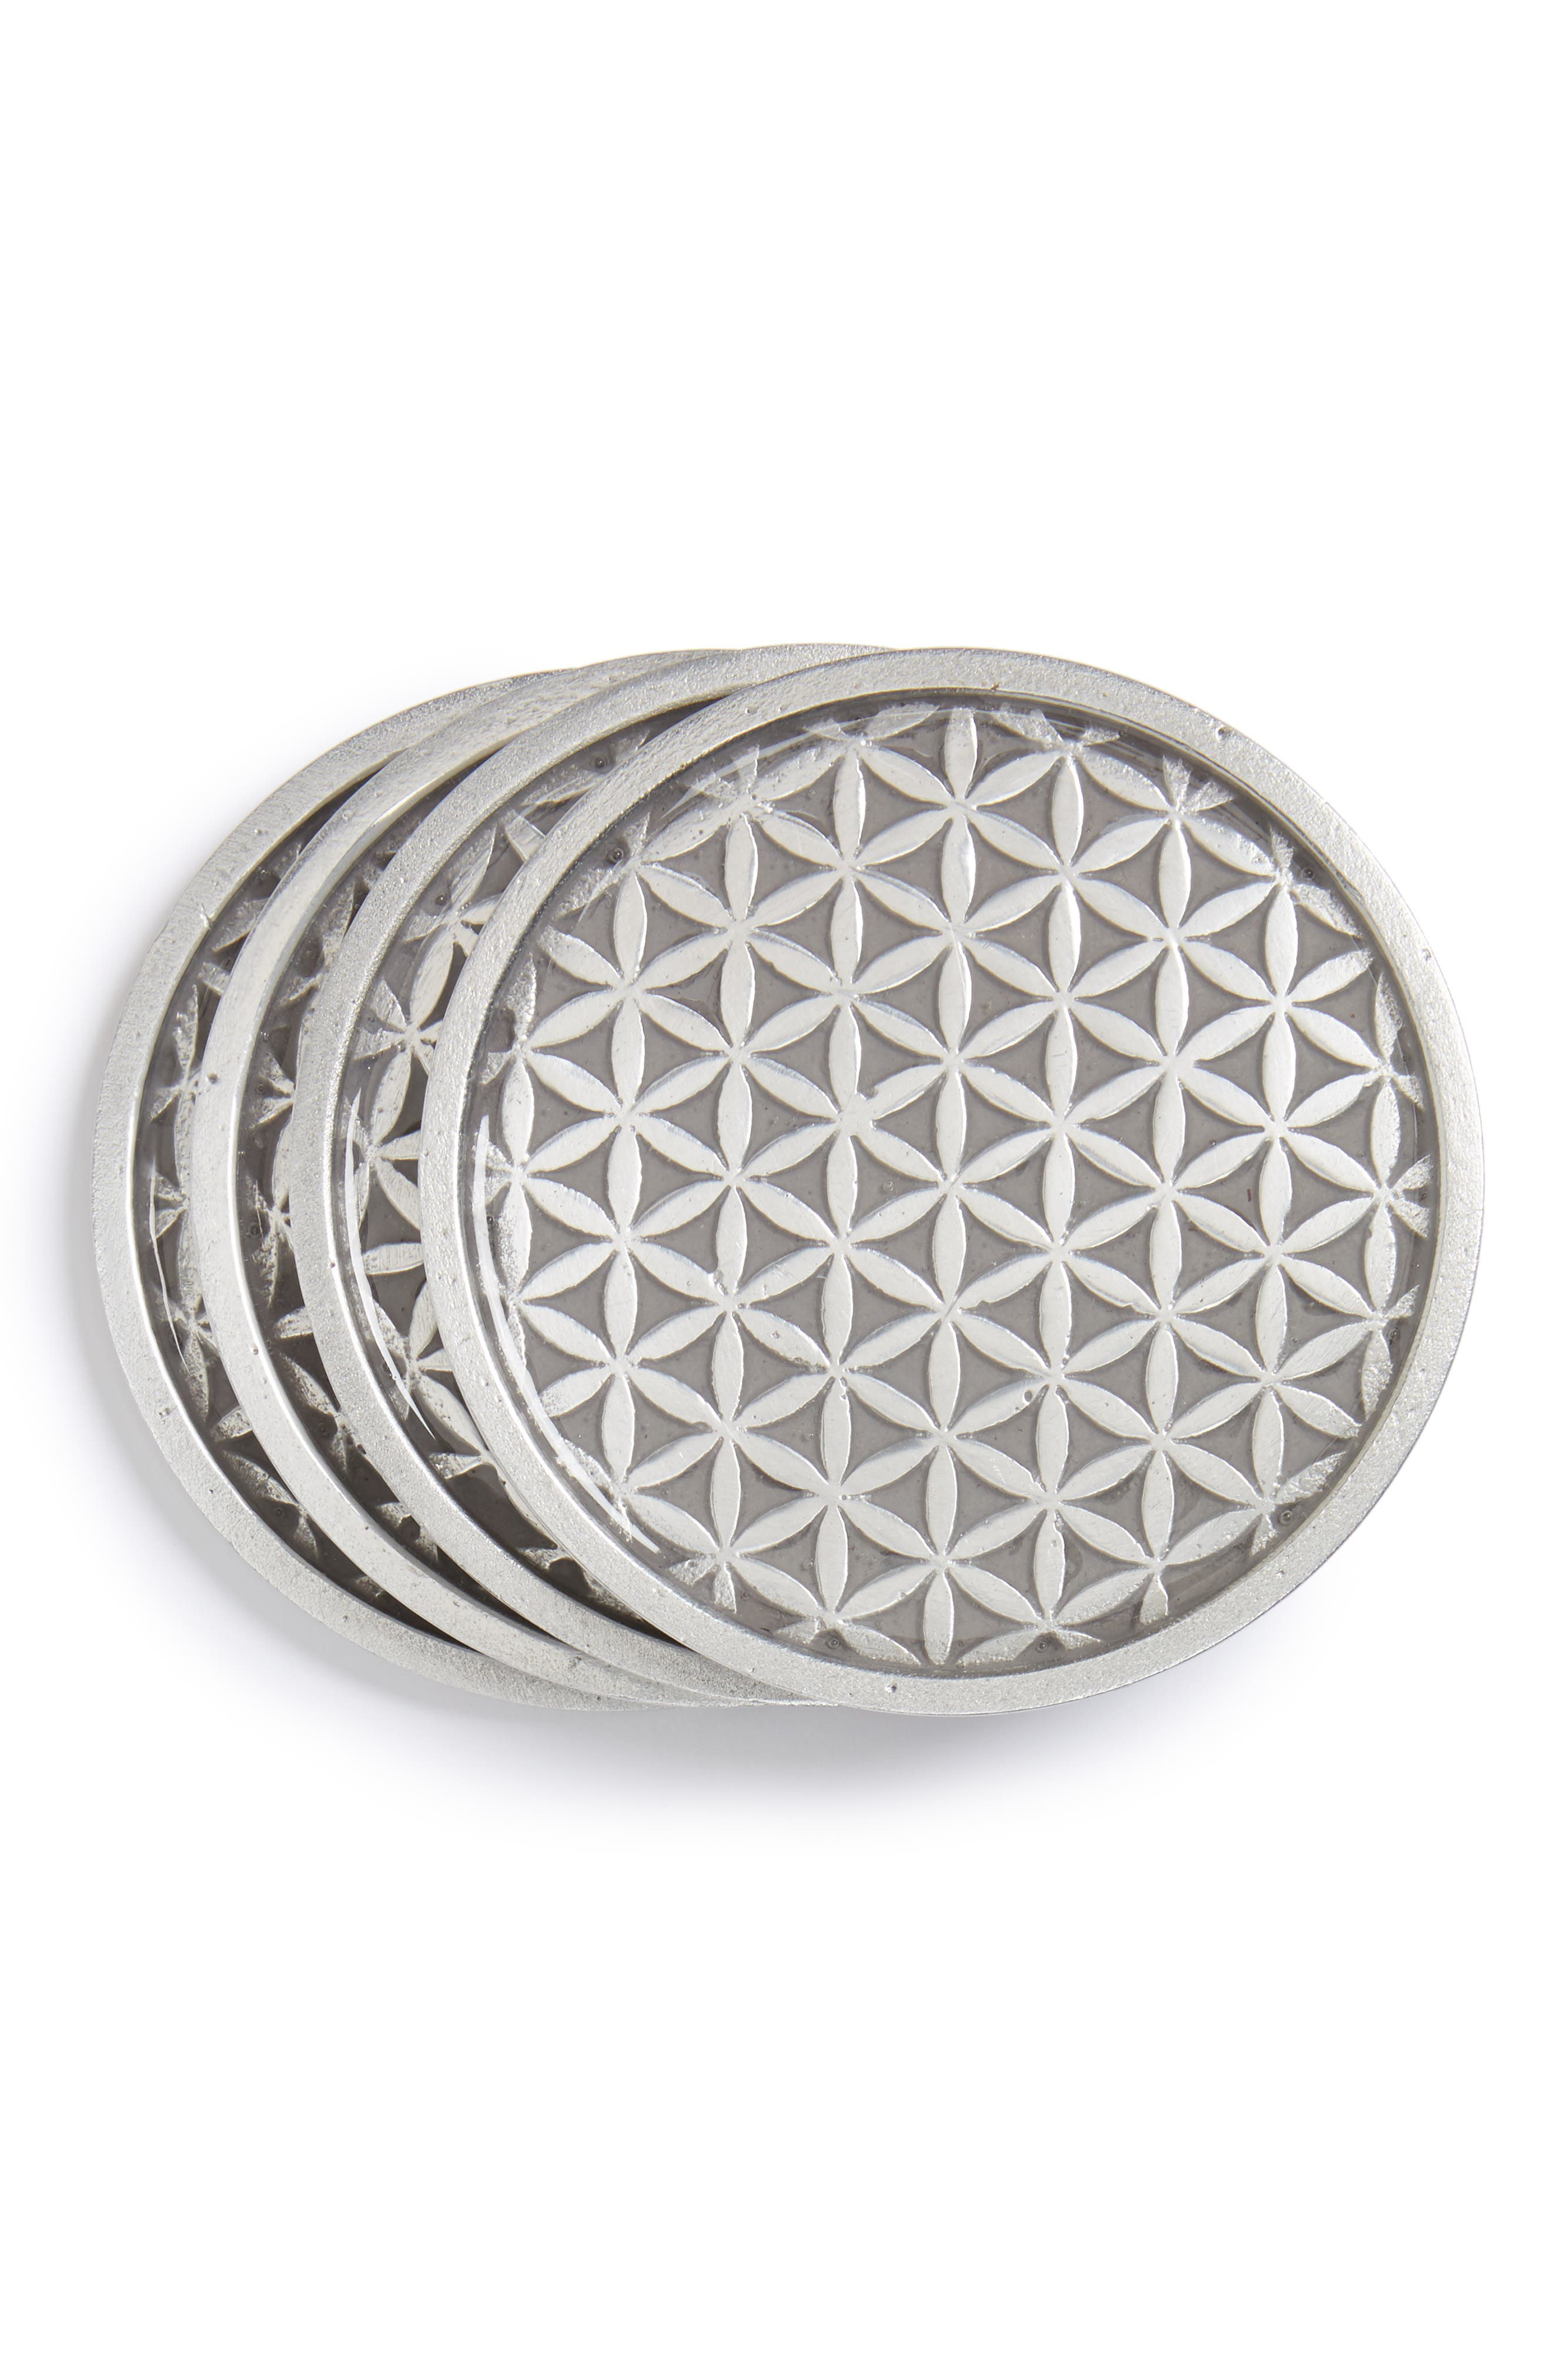 Flower of Life Set of 4 Coasters,                             Main thumbnail 1, color,                             020